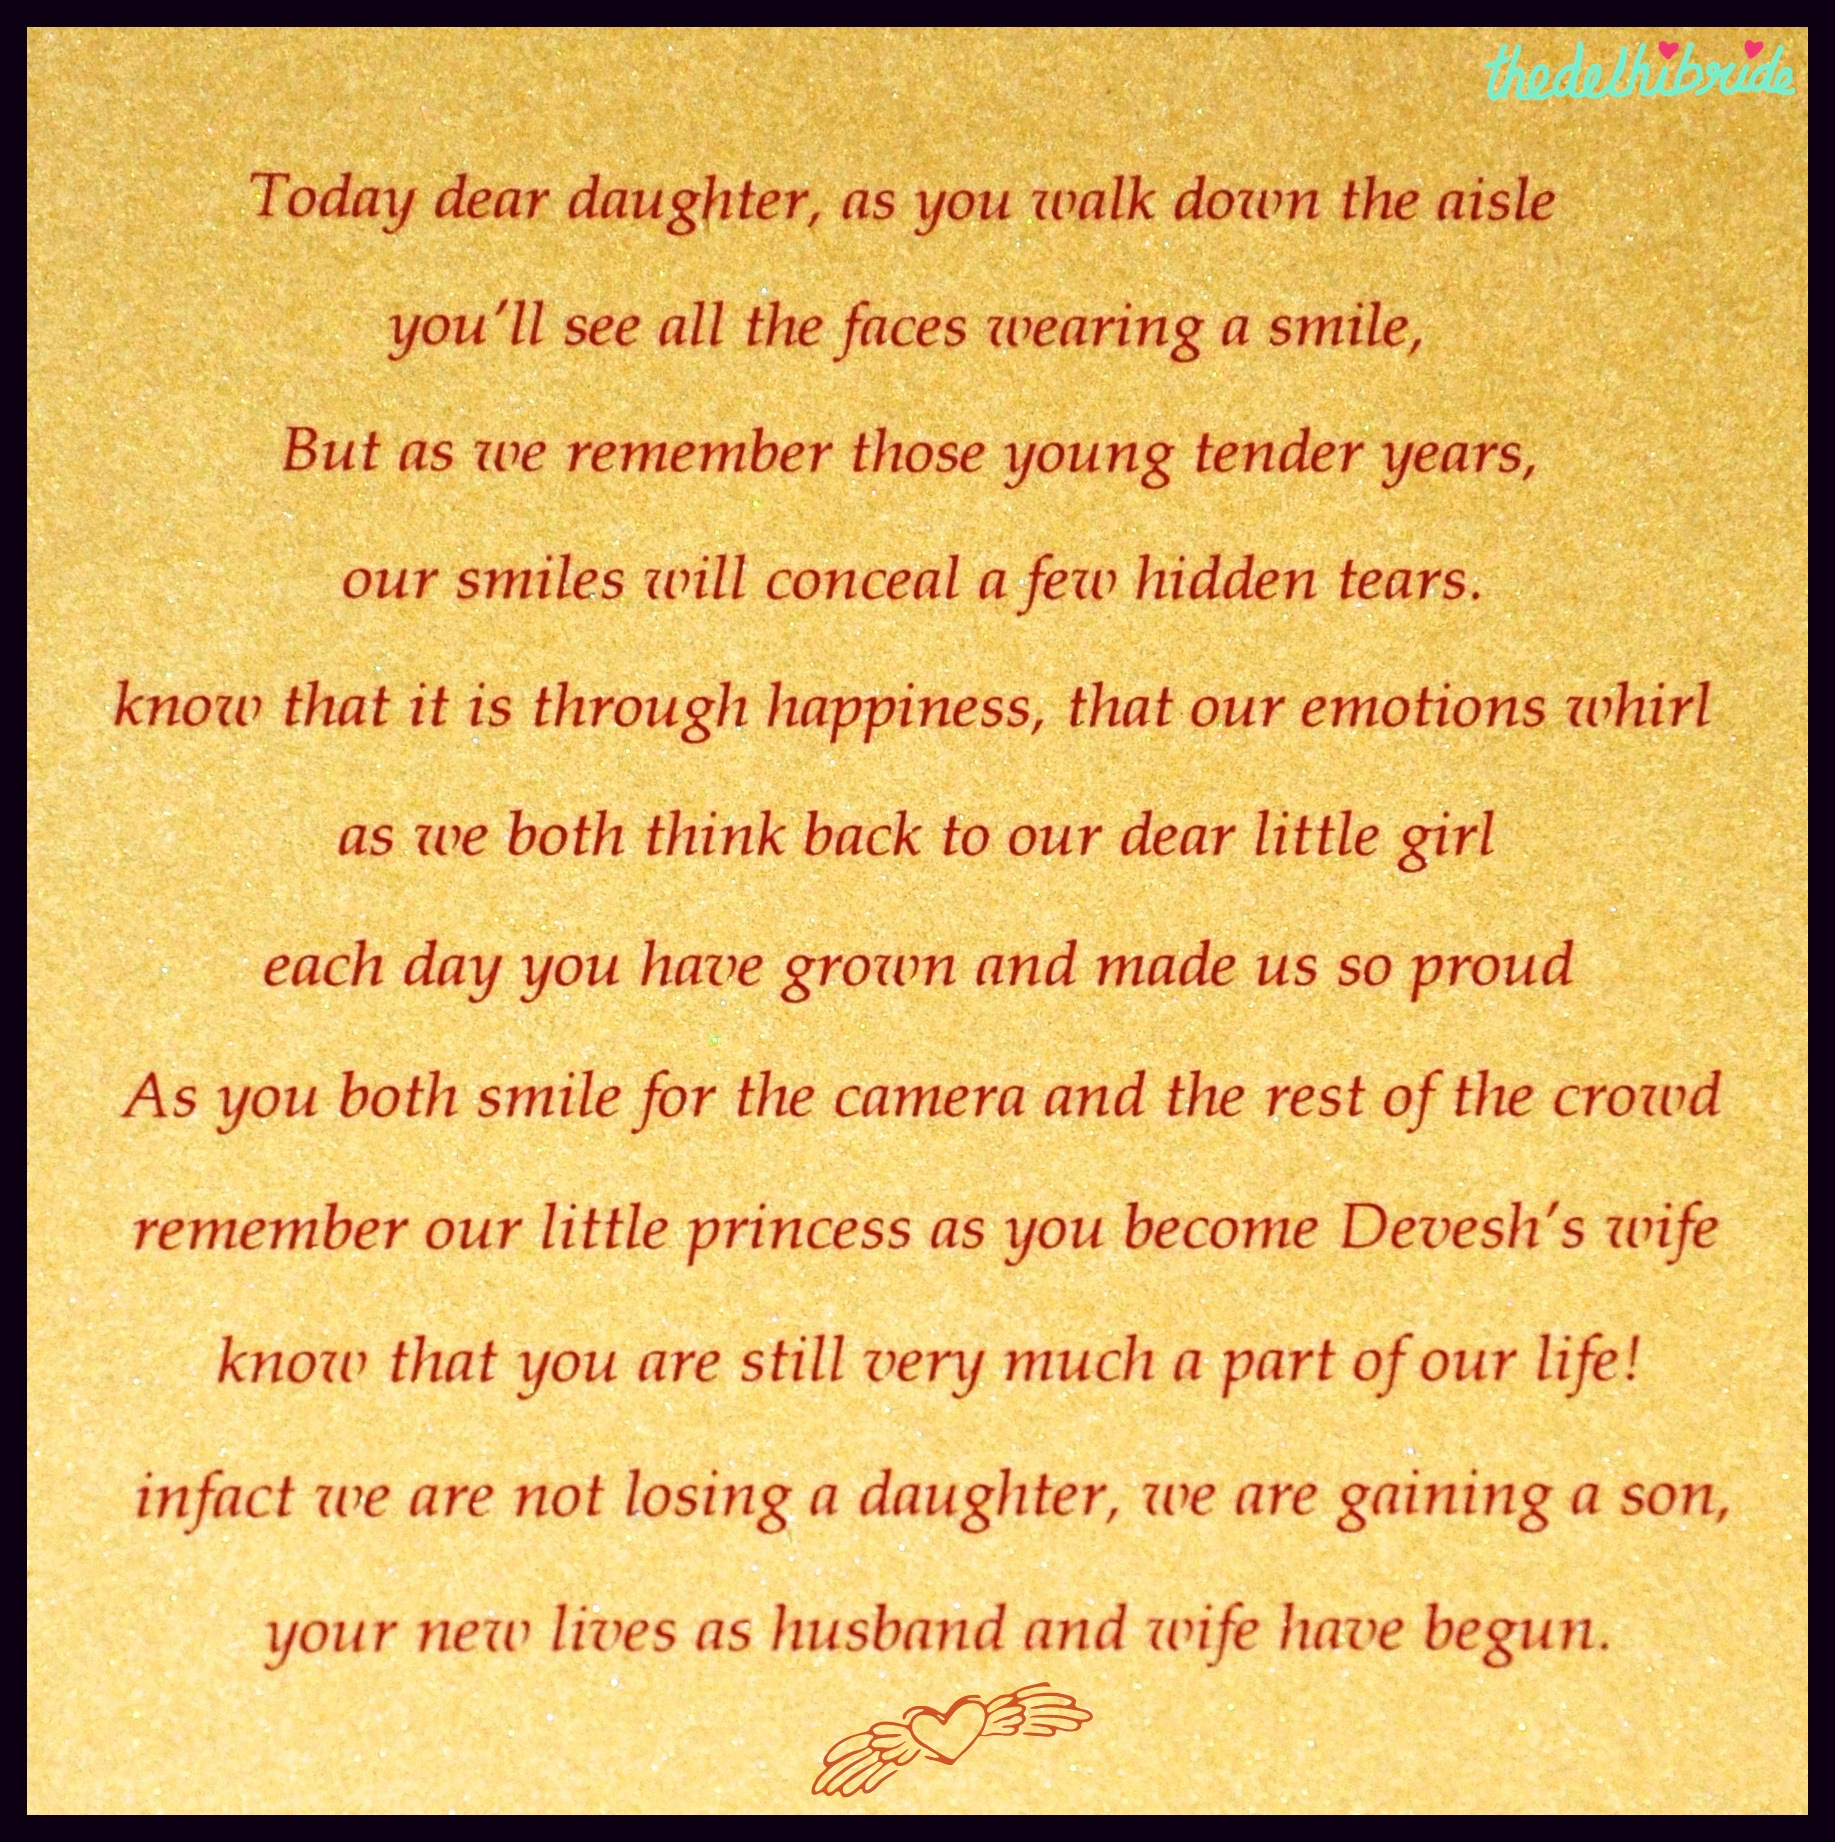 Inspiration words for a wedding card an indian wedding blog stopboris Images